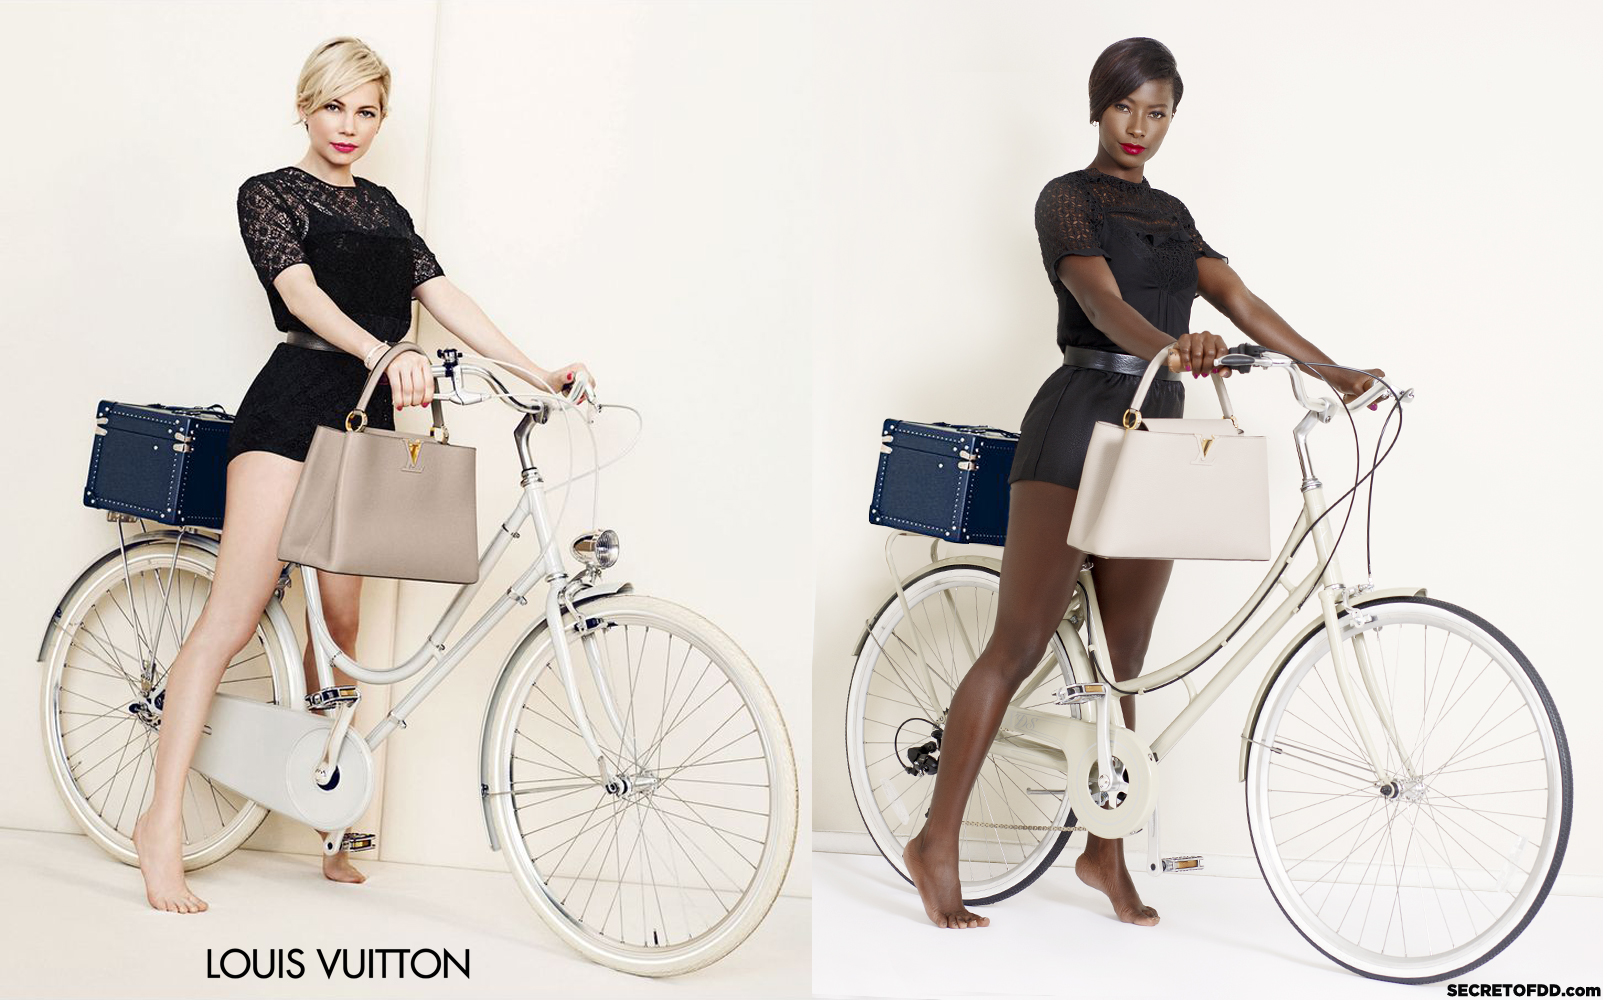 Michelle Williams (L) / Deddeh Howard (R) - Louis Vuitton